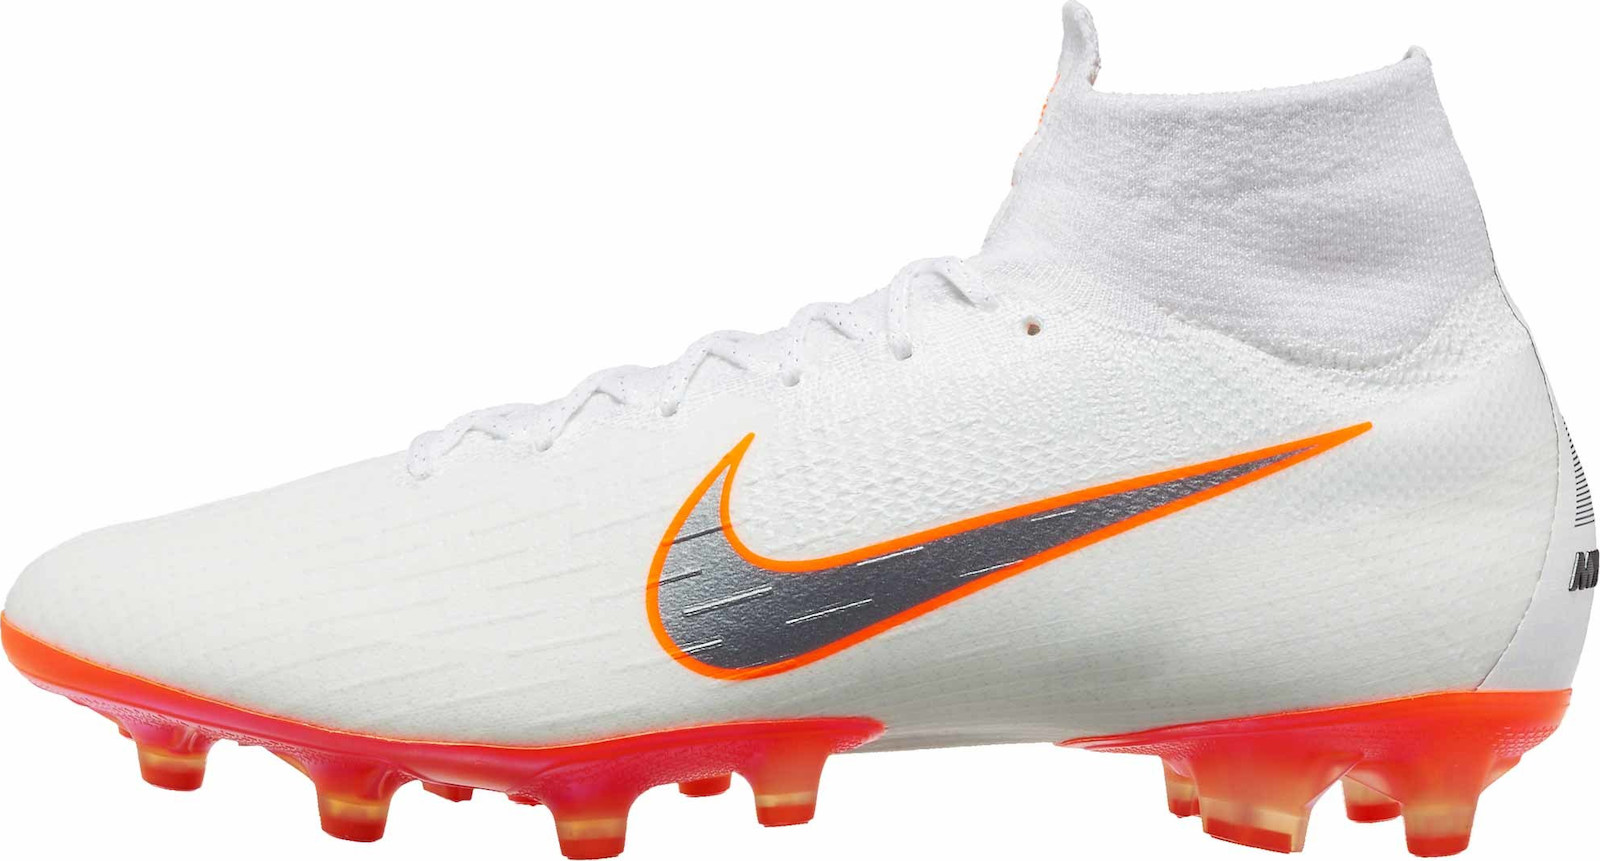 low priced e6073 1d2f5 Προσθήκη στα αγαπημένα menu Nike Mercurial Superfly 360 Elite Ag-Pro AH7377 -107